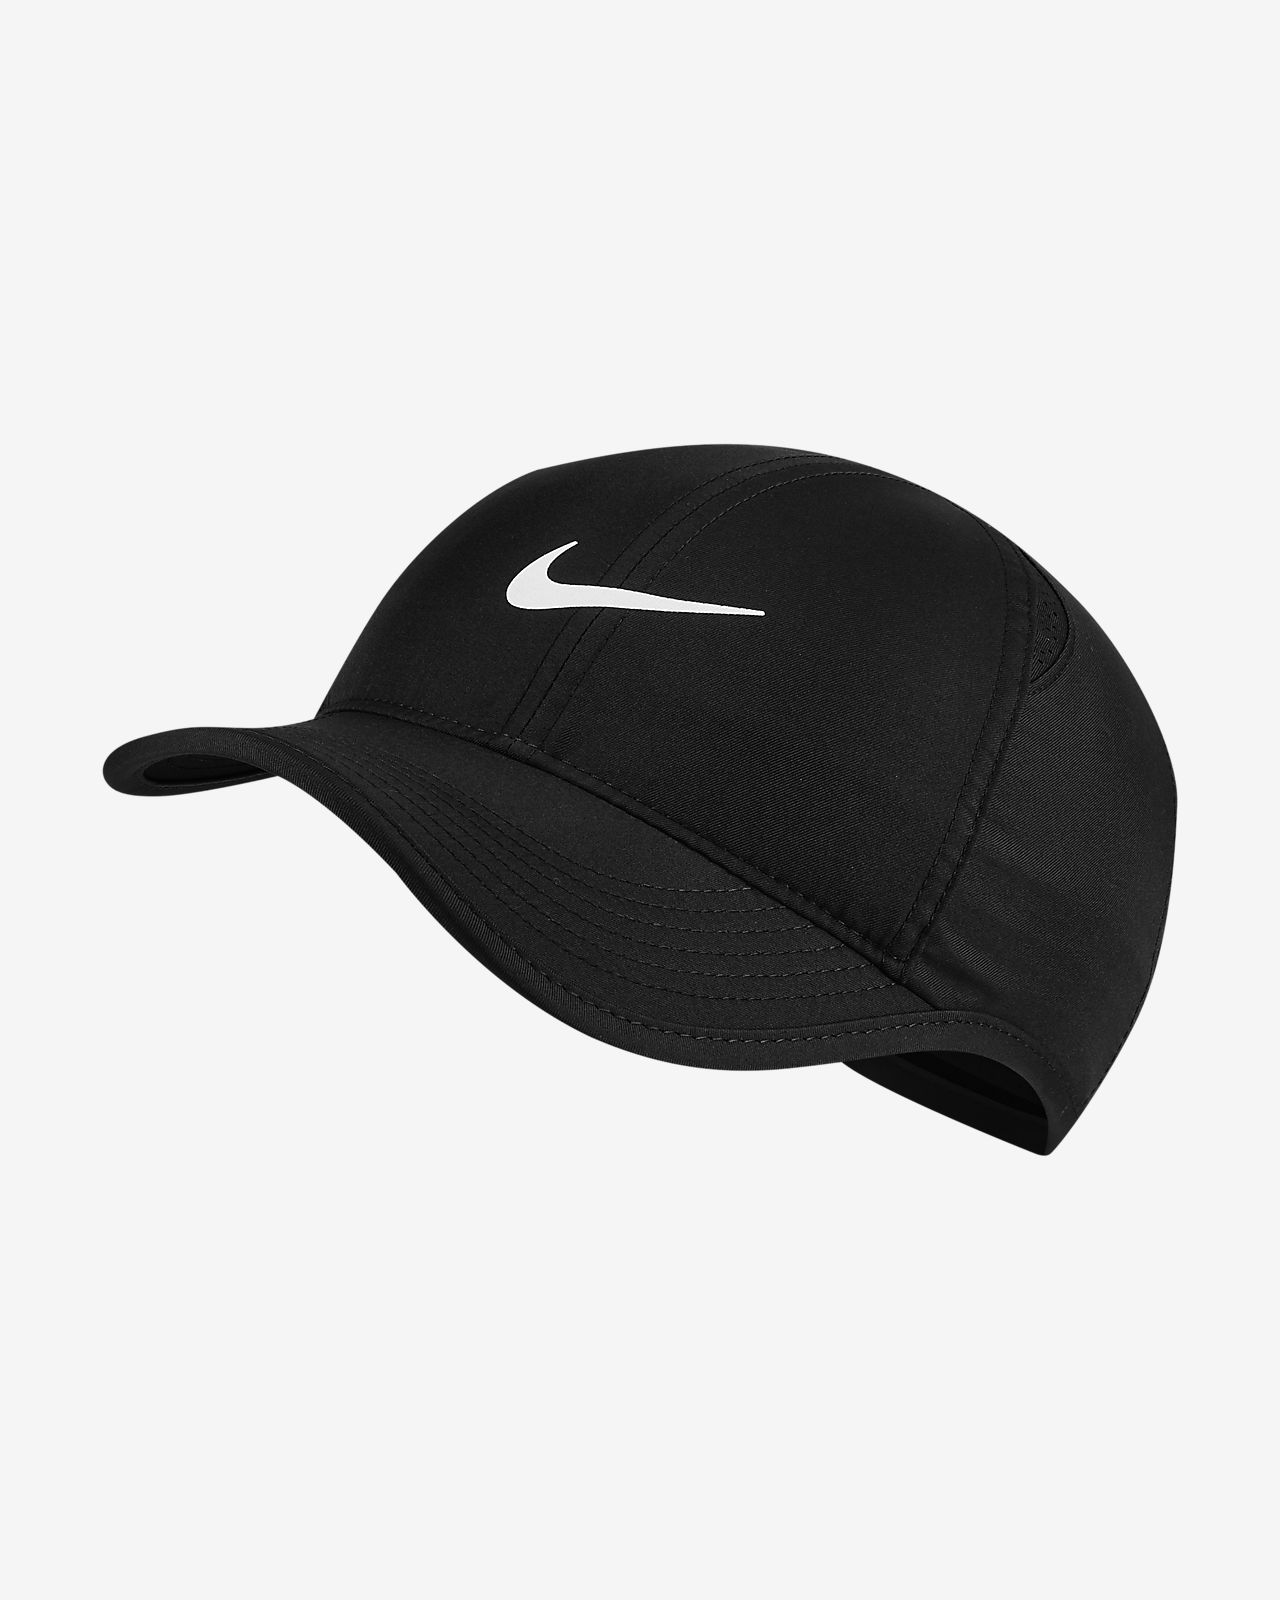 Nike Sportswear AeroBill Featherlight Women's Adjustable Cap